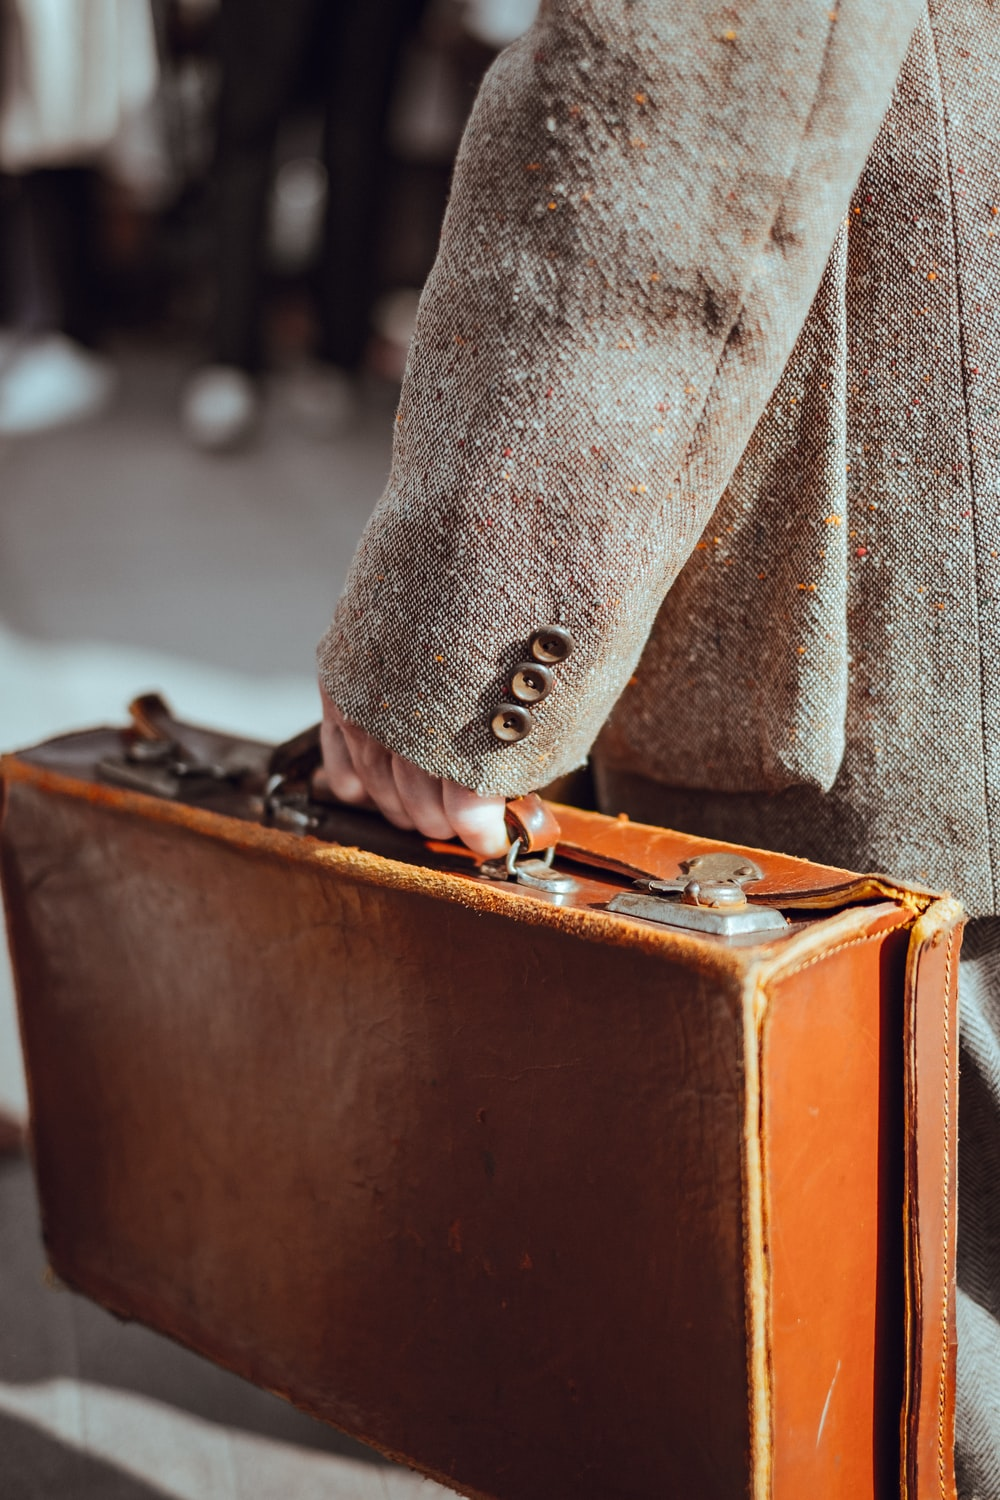 person wearing coat carrying suitcase